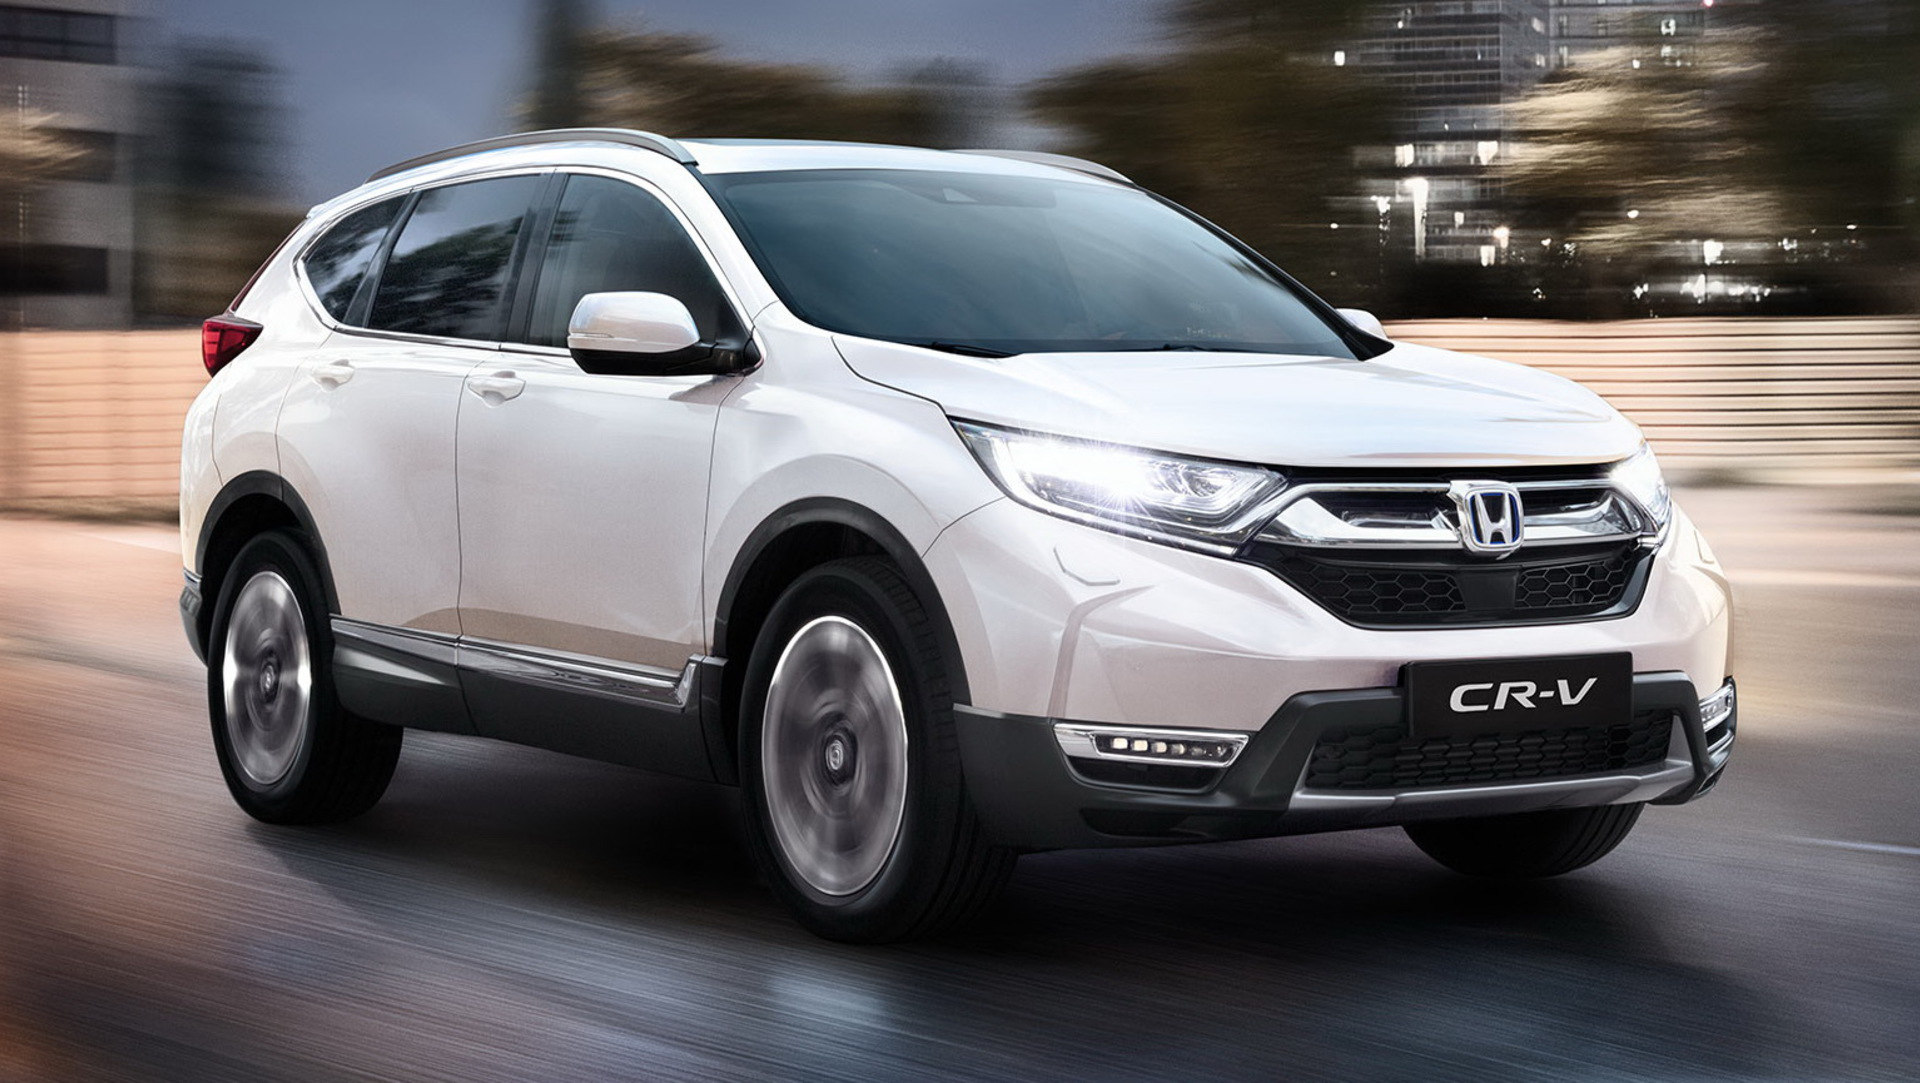 The 2021 Honda CR-V will hit the showroom floors throughout Great Britain in December, bringing along cosmetic changes and an all-hybrid lineup.